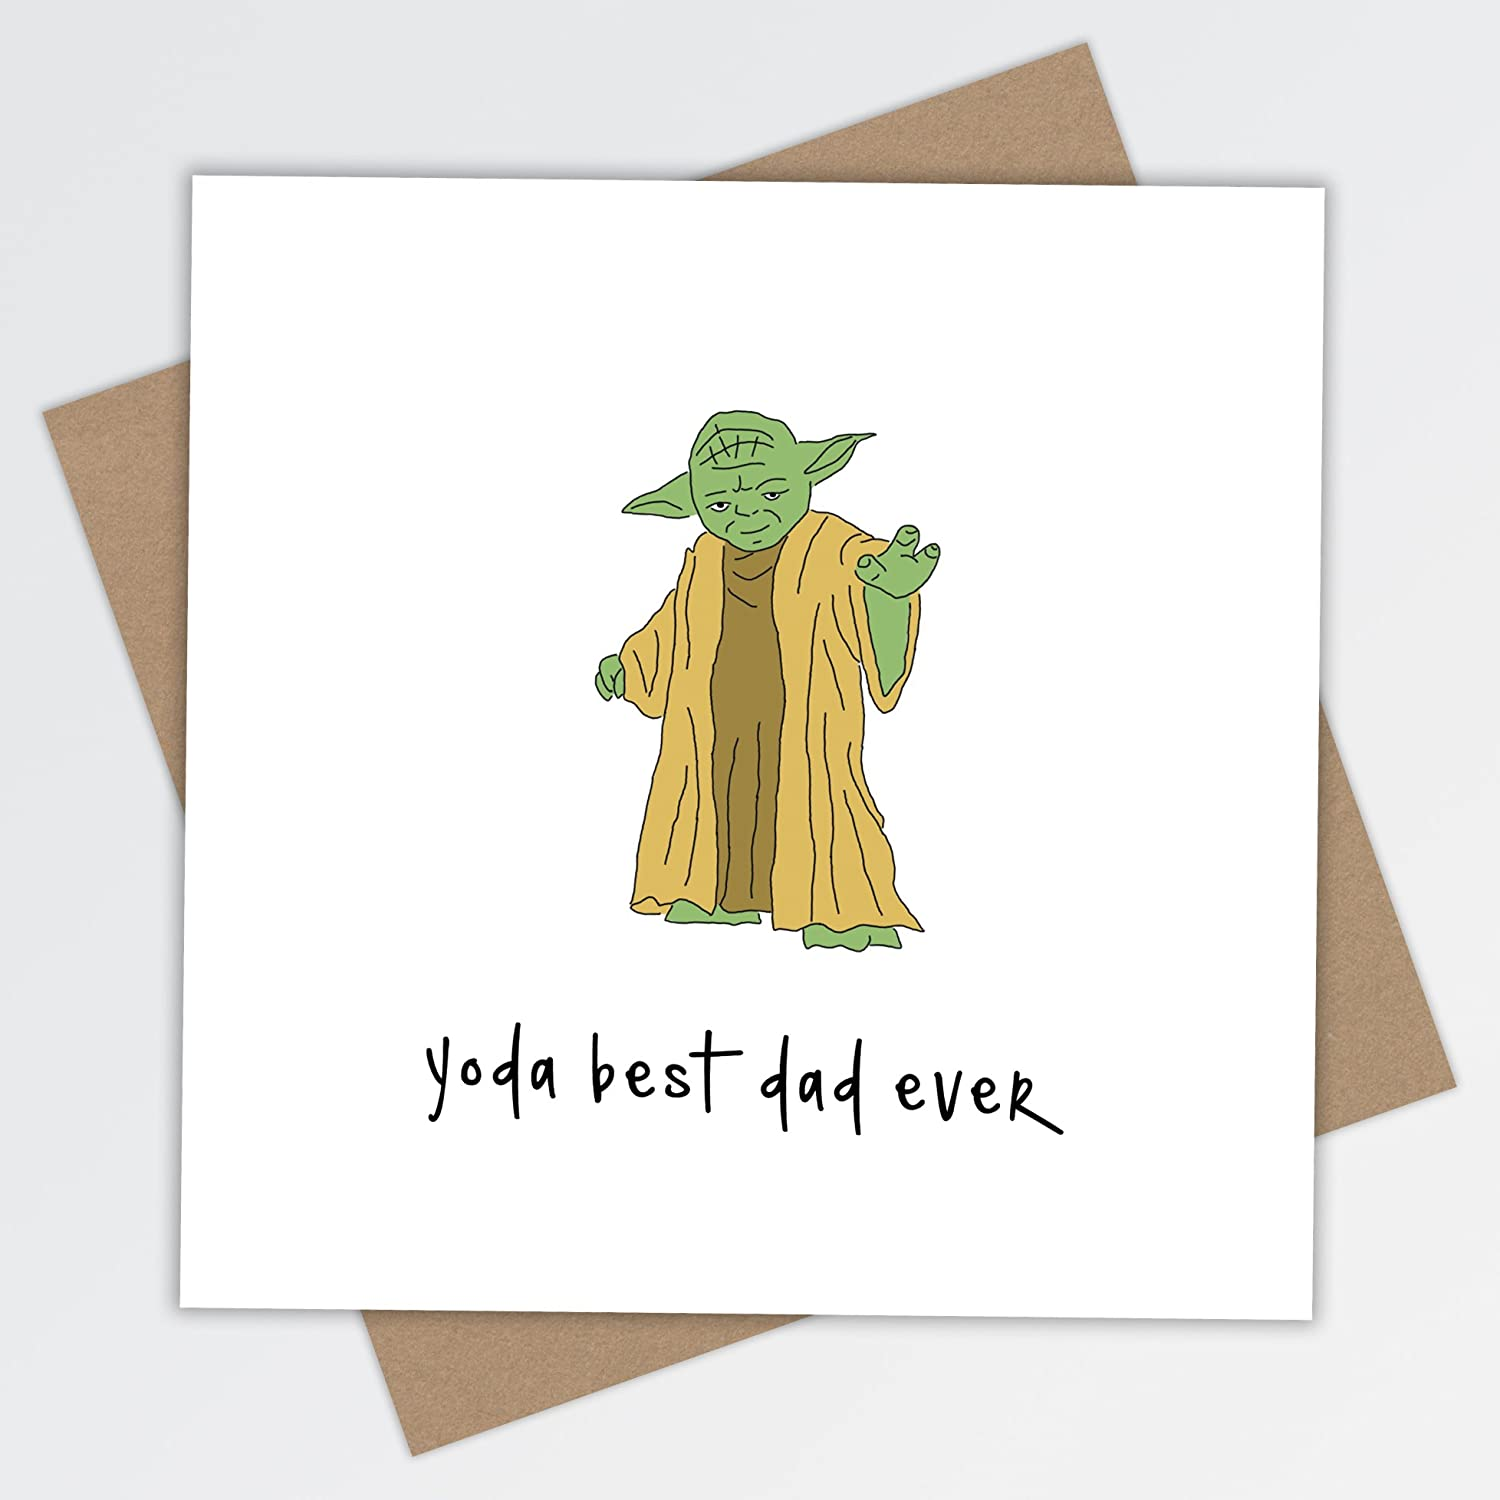 Dad yoda best birthday greeting card fathers day star wars dad yoda best birthday greeting card fathers day star wars daddy father blank funny humorous amazon office products bookmarktalkfo Images